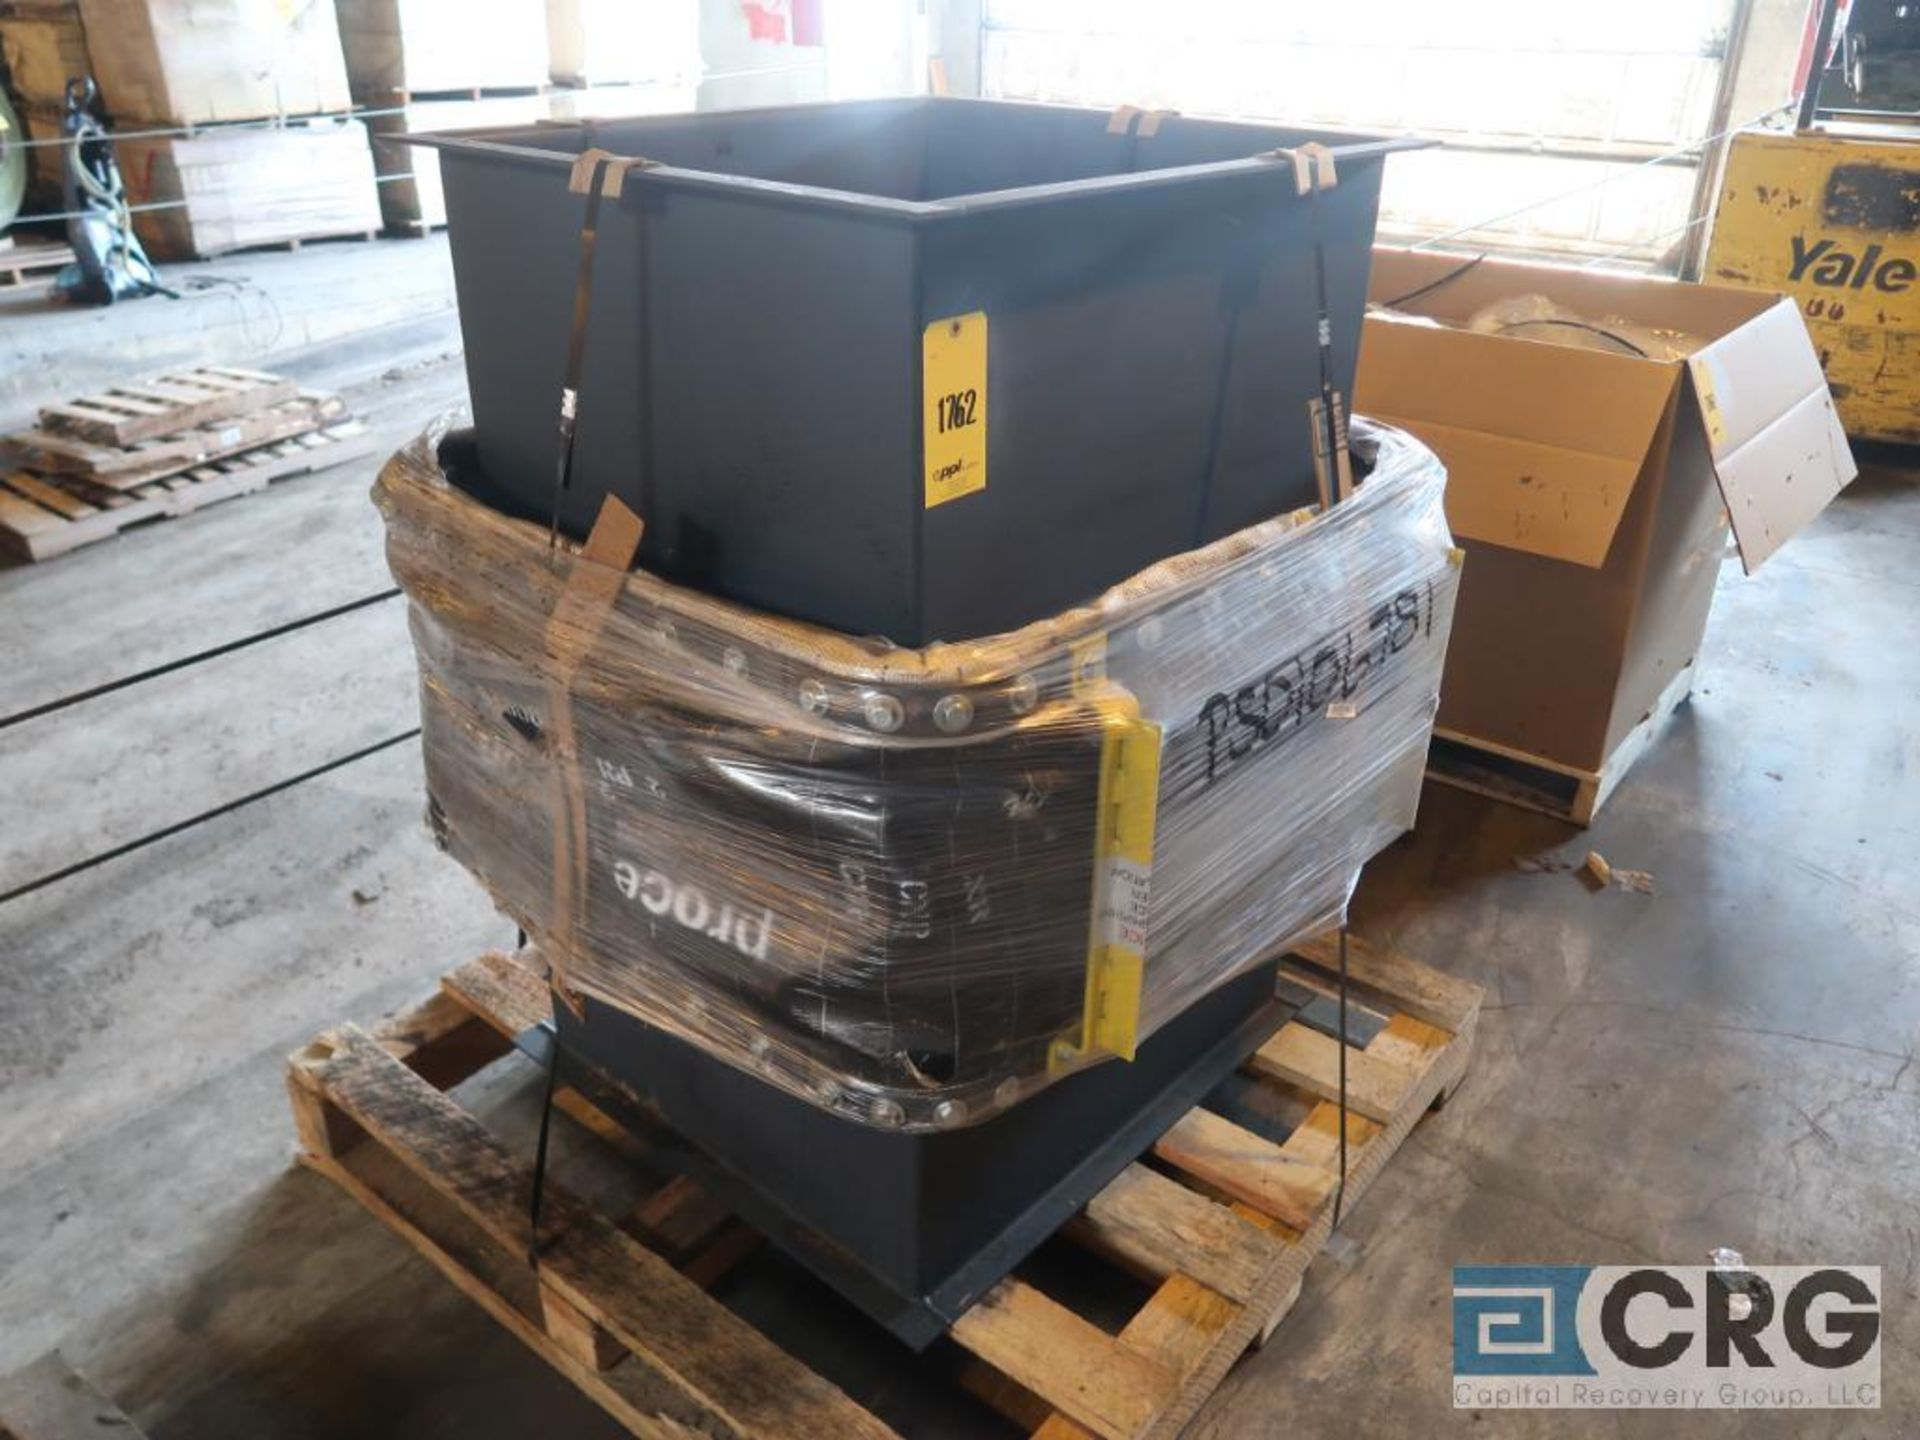 Lot of assorted motor, gear bearing housing, gear drive on metal rack (Next Bay Cage Area) - Image 13 of 16